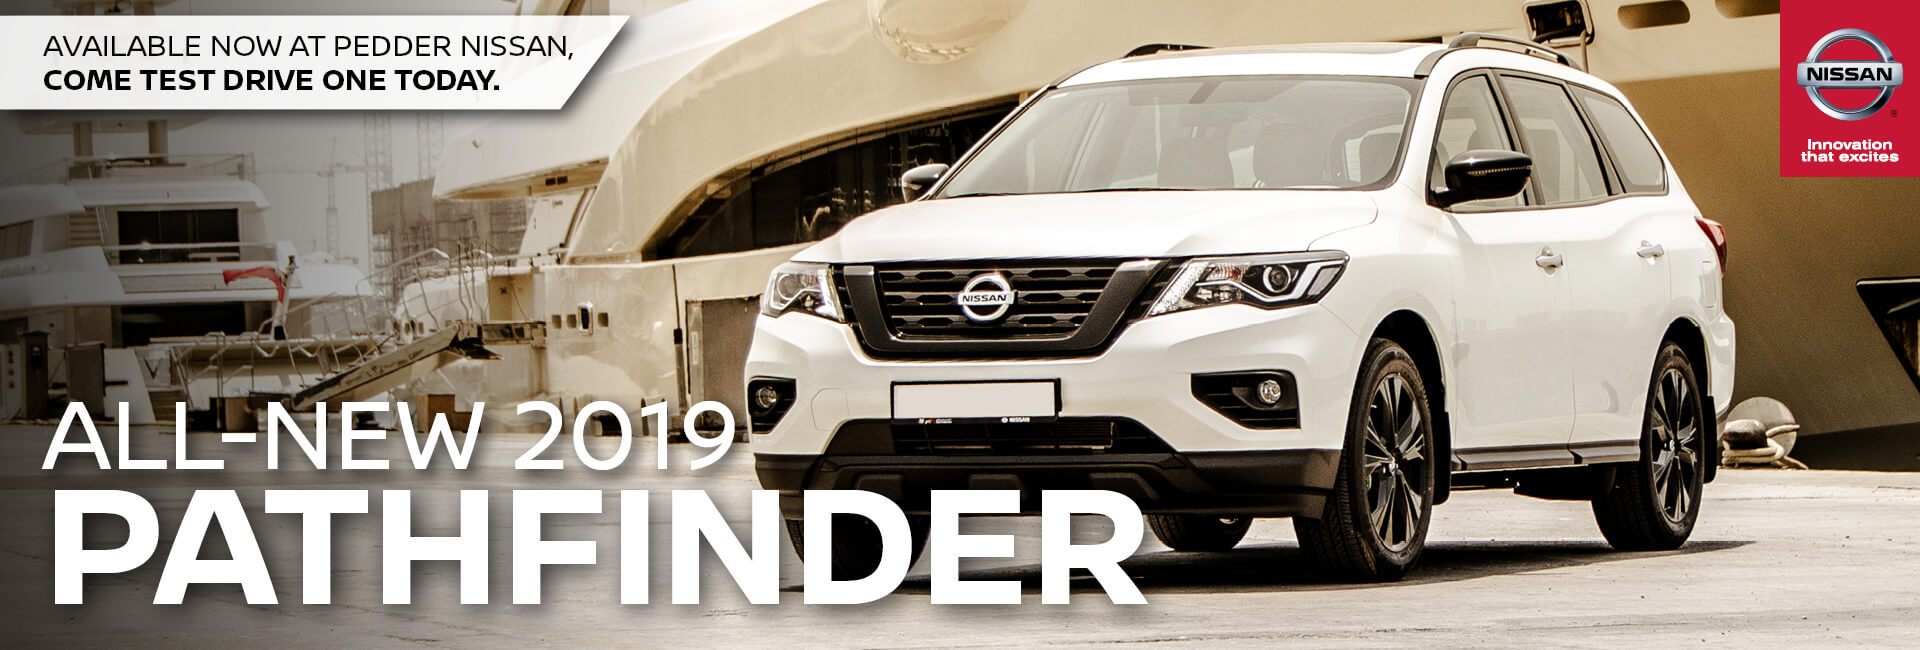 All-New 2019 Pathfinder